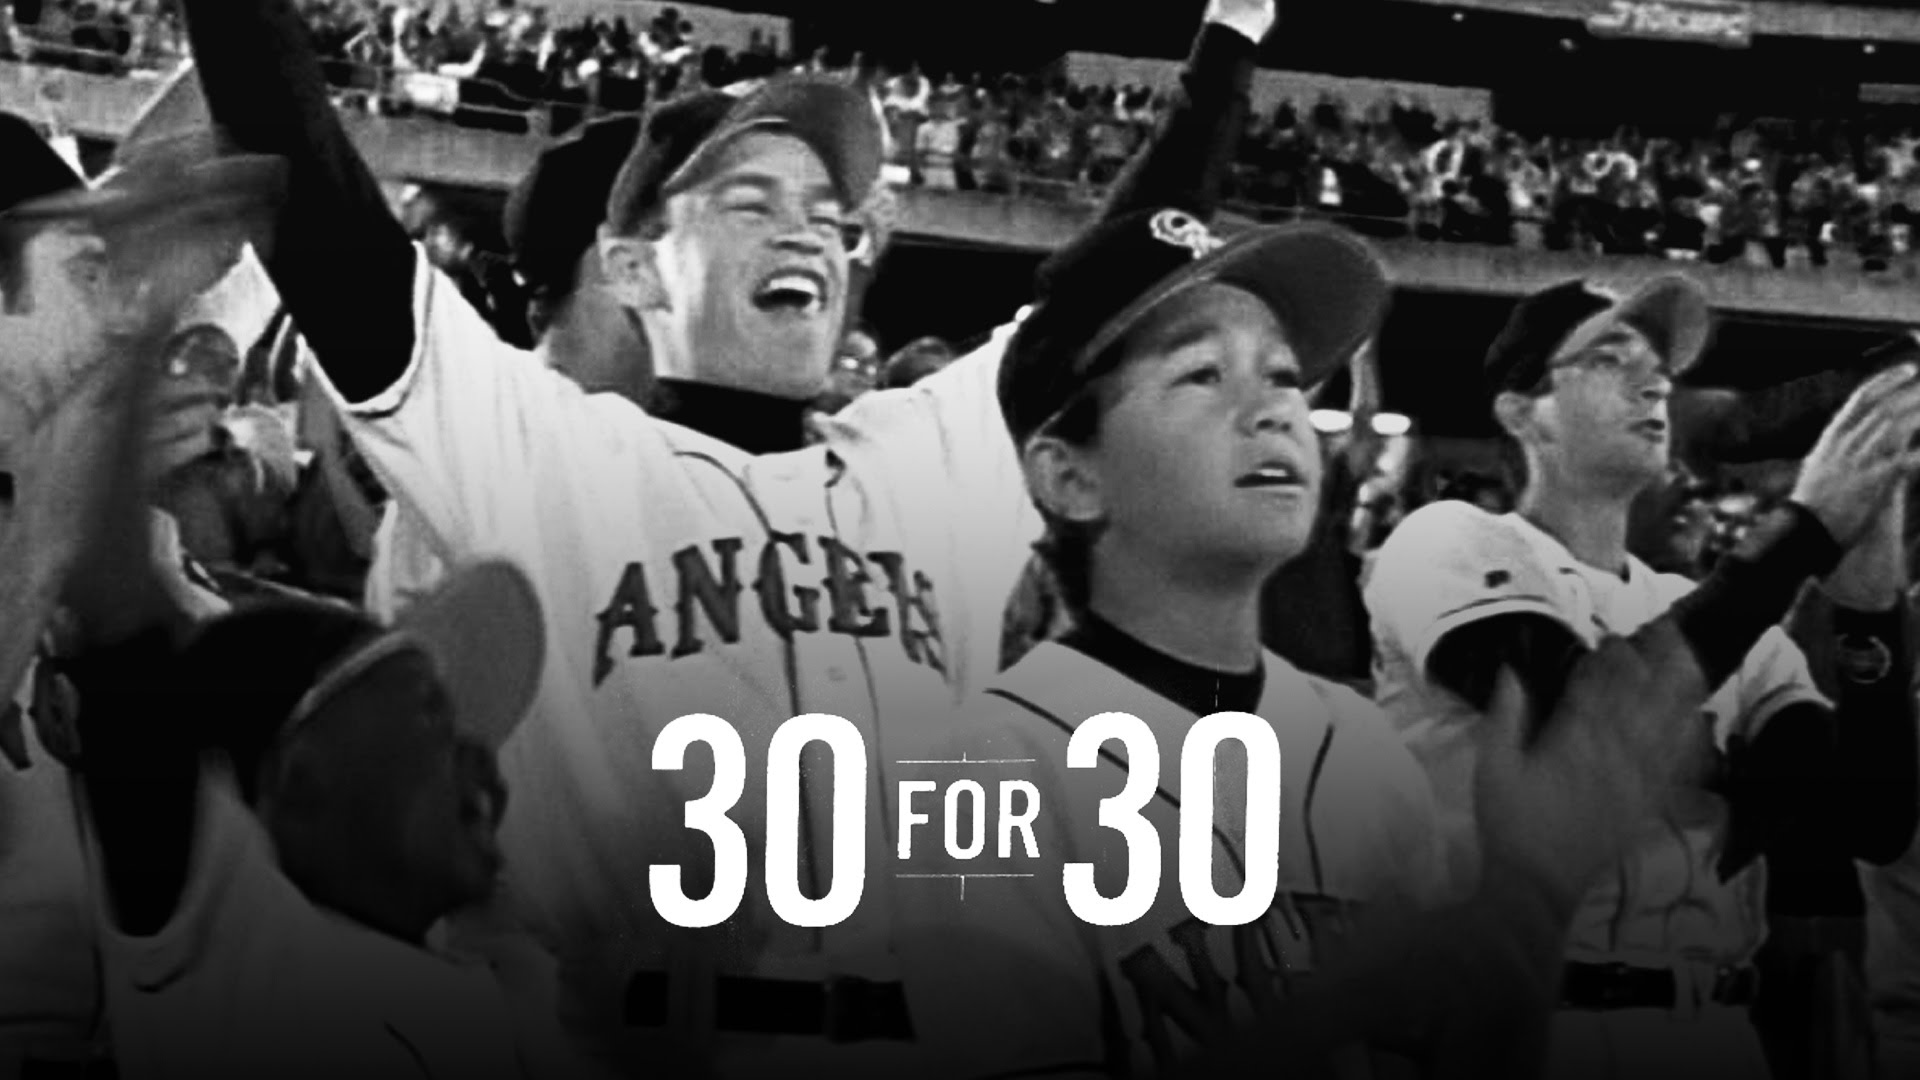 Video Pick: 30 for 30 Parody - Angels in the Outfield